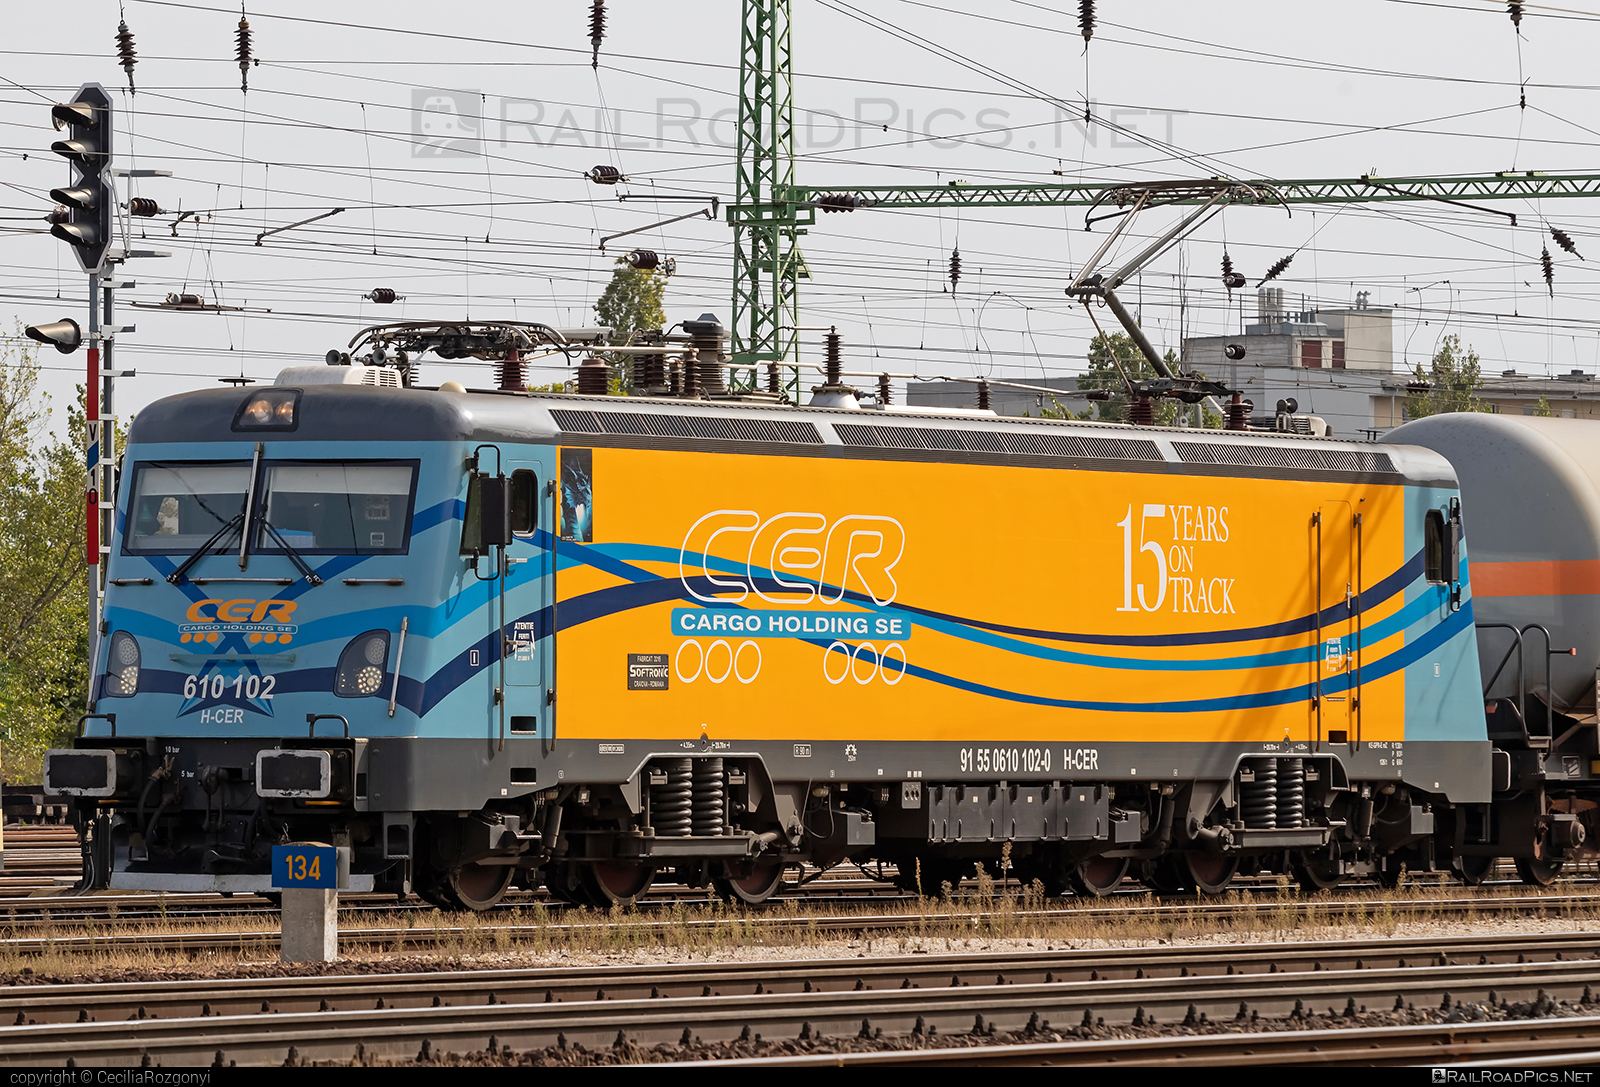 Softronic Transmontana - 610 102 operated by CER Cargo Holding SE #cer #cercargoholding #cercargoholdingse #softronic #softronictransmontana #transmontana